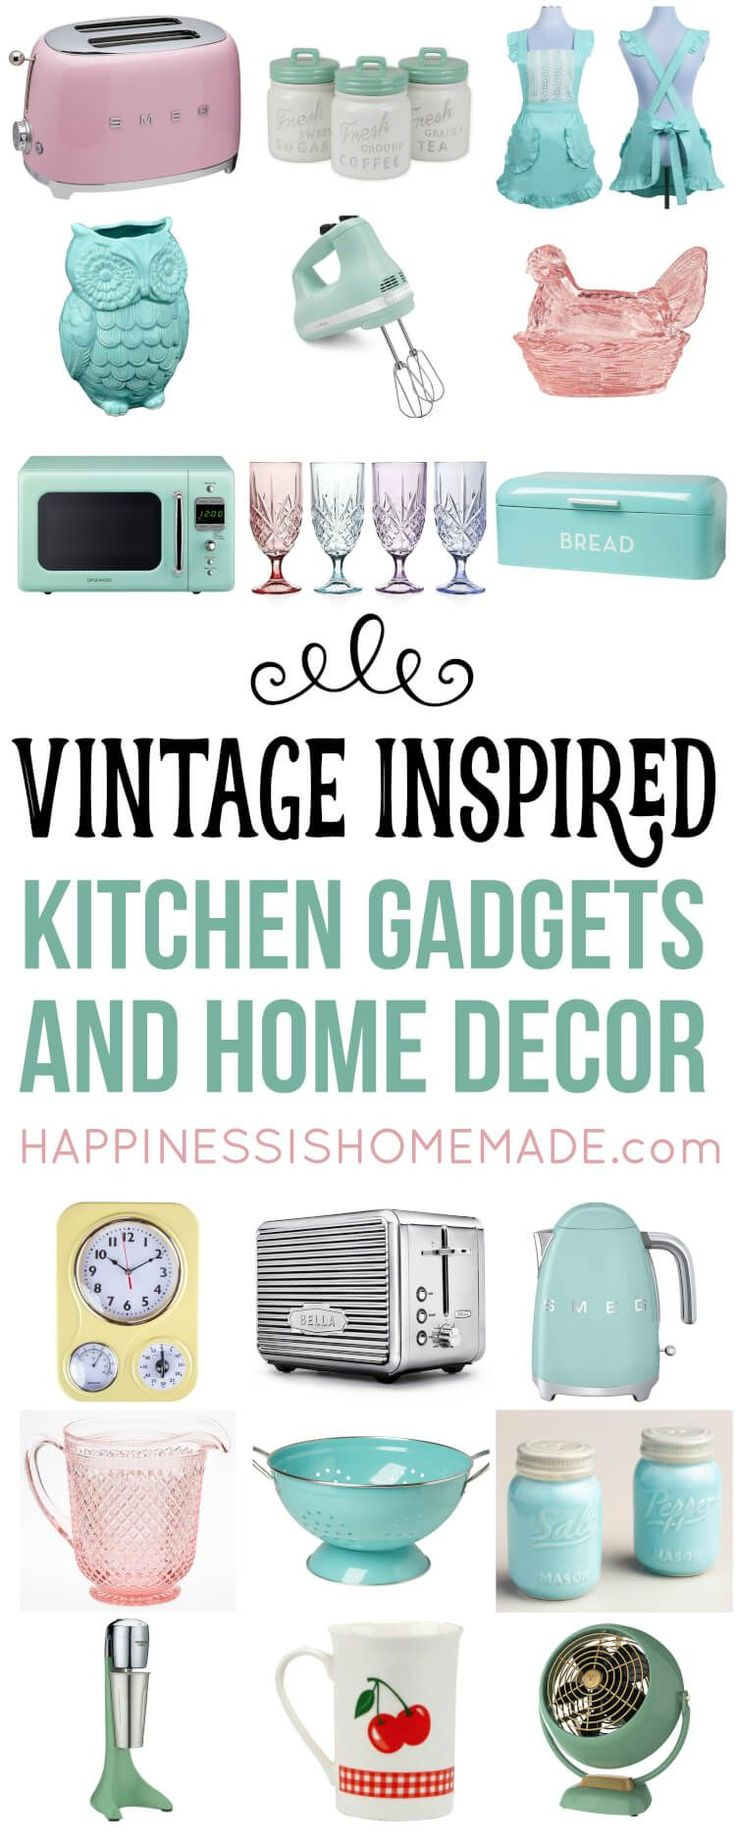 Nostalgic Vintage-Inspired Kitchen Decor and Gadgets that are perfect for your kitschy retro revival kitchen! Must-have classic appliances, gadgets, decor and more! via @hiHomemadeBlog